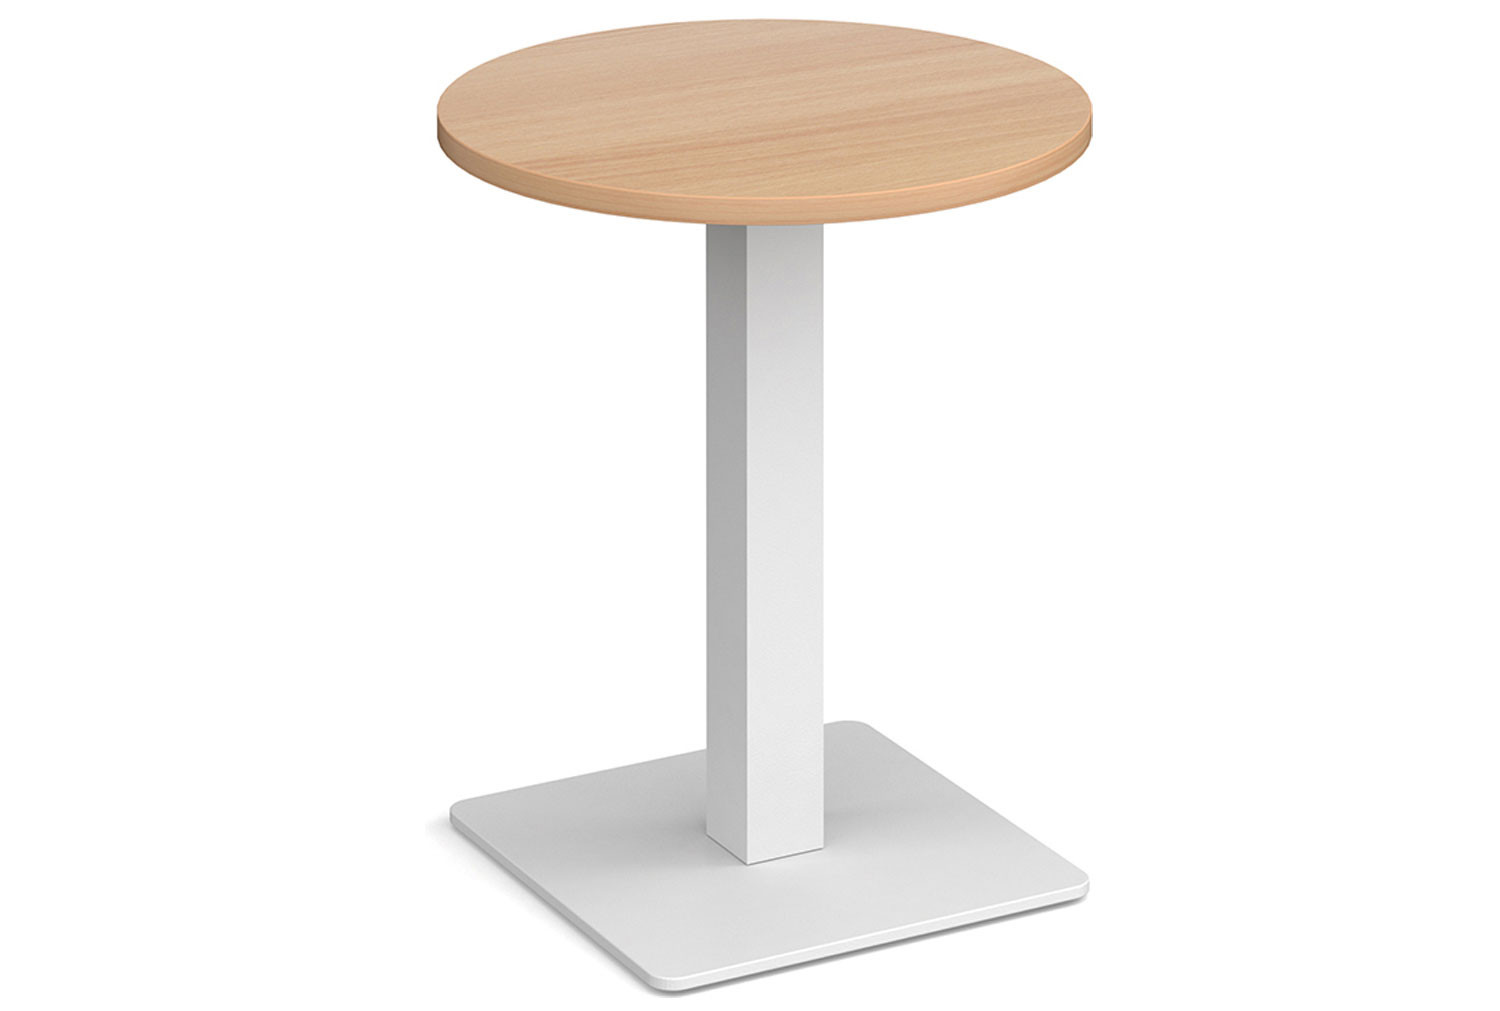 Chappell Circular Dining Table